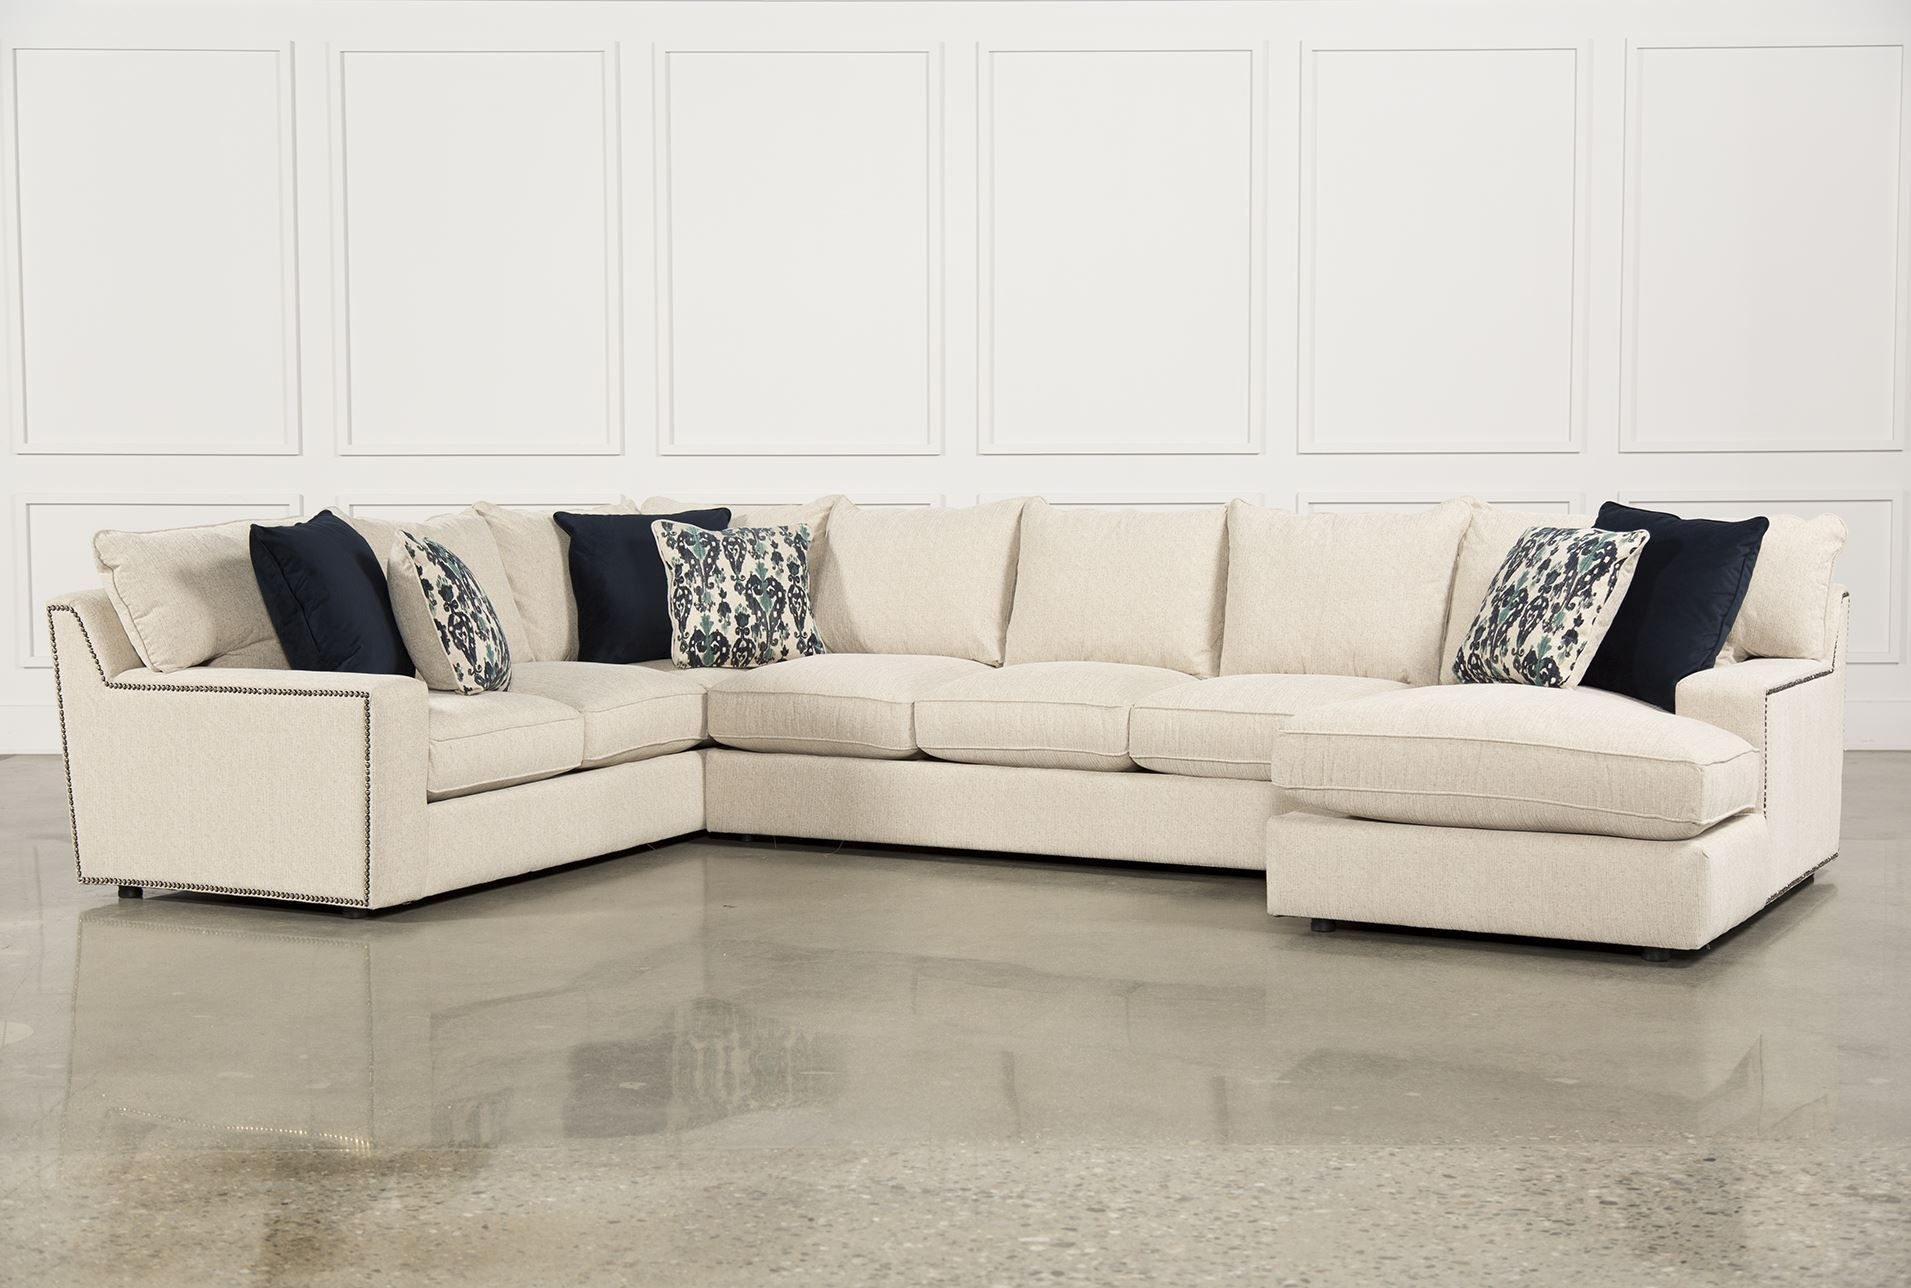 Rennell 3 Piece Sectional W/raf Chaise | Home Decor Spanish / Tuscan Throughout Meyer 3 Piece Sectionals With Raf Chaise (View 7 of 25)